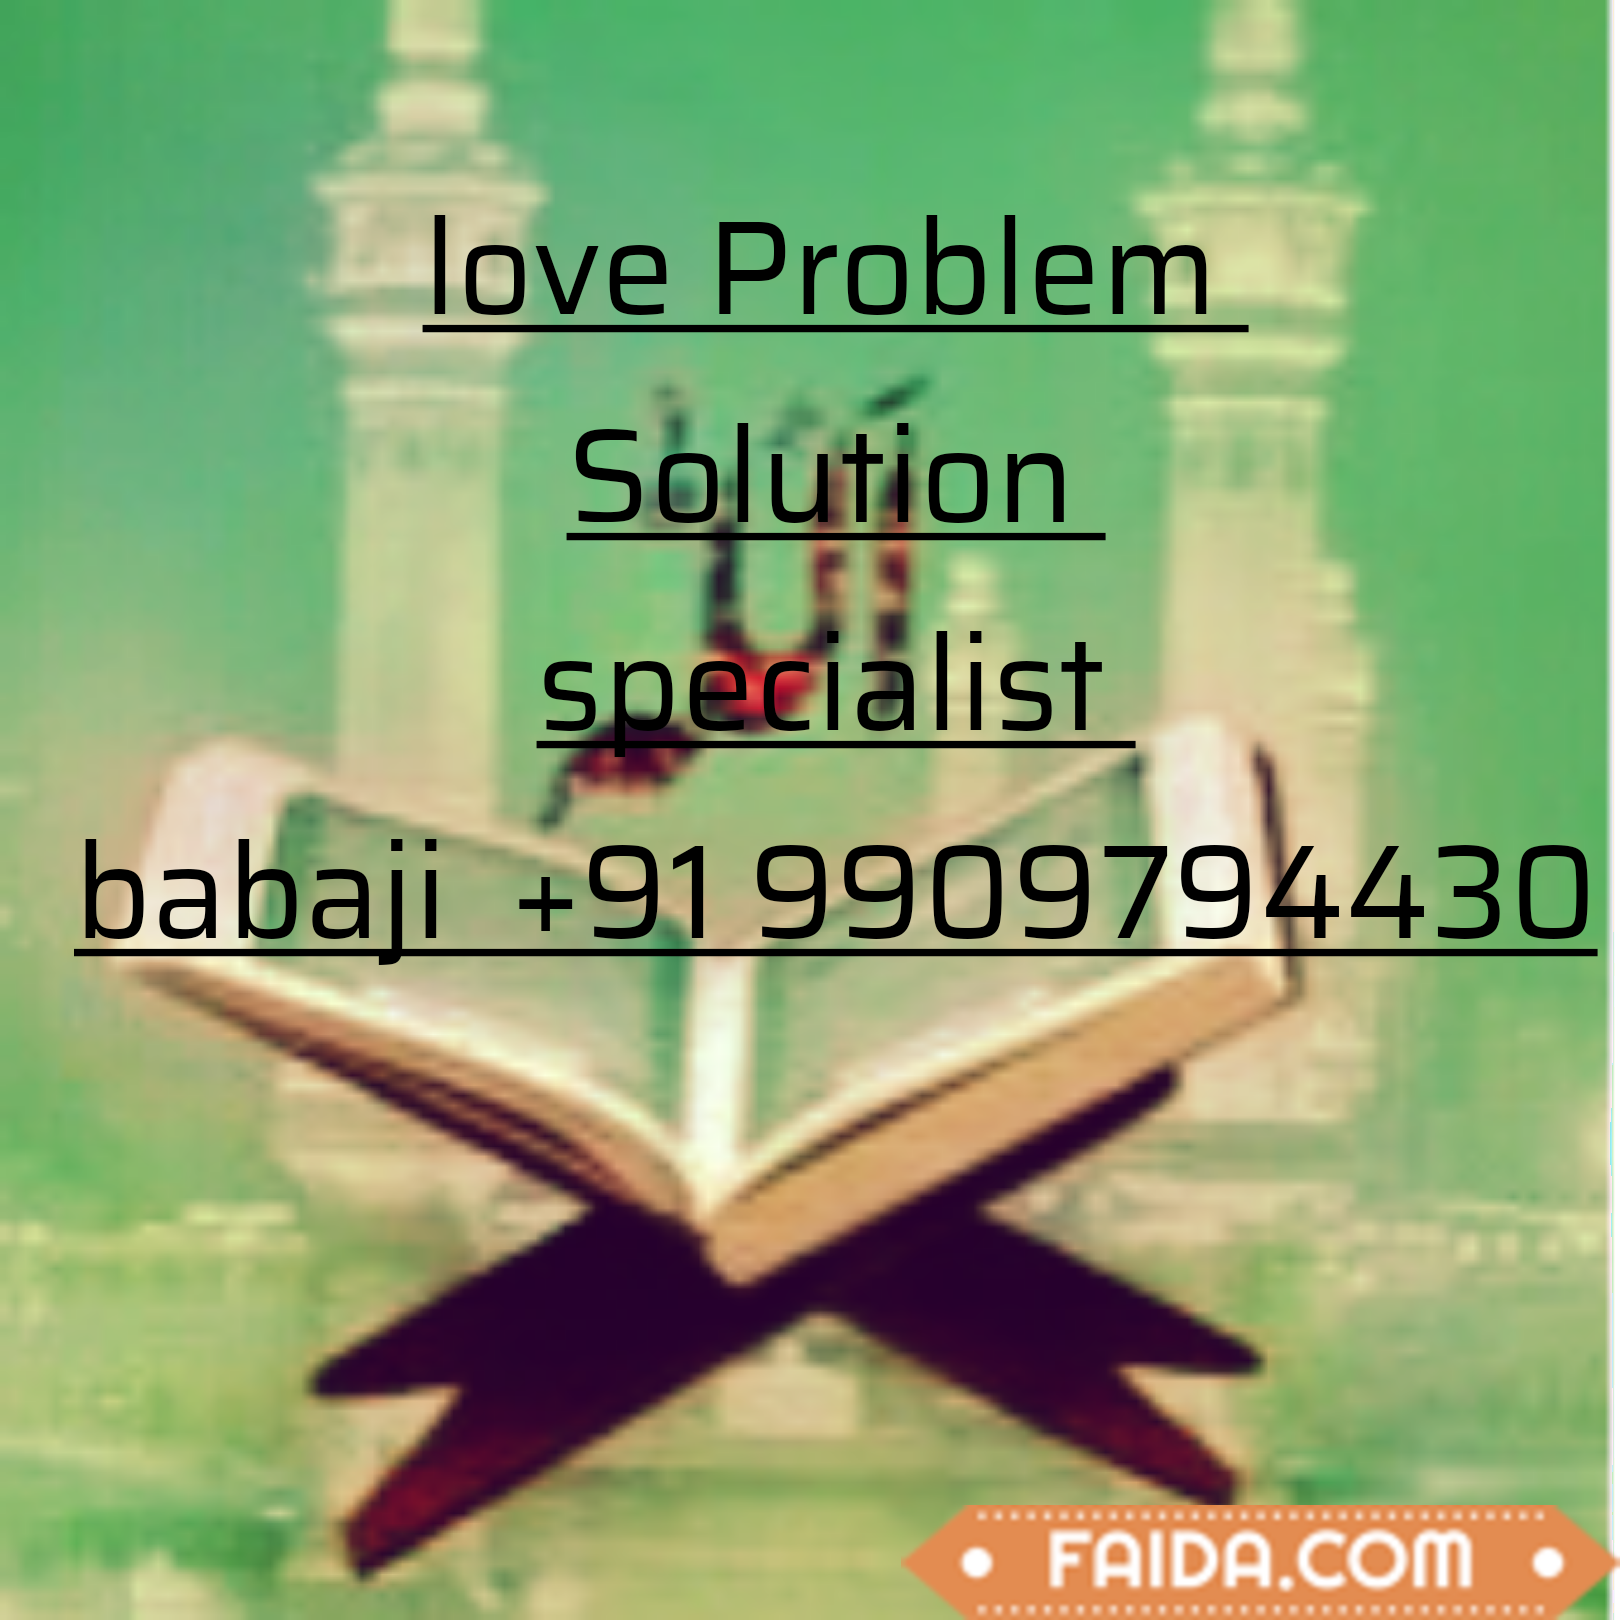 Love Problem Solution Specialist BABA JI +91-9909794430